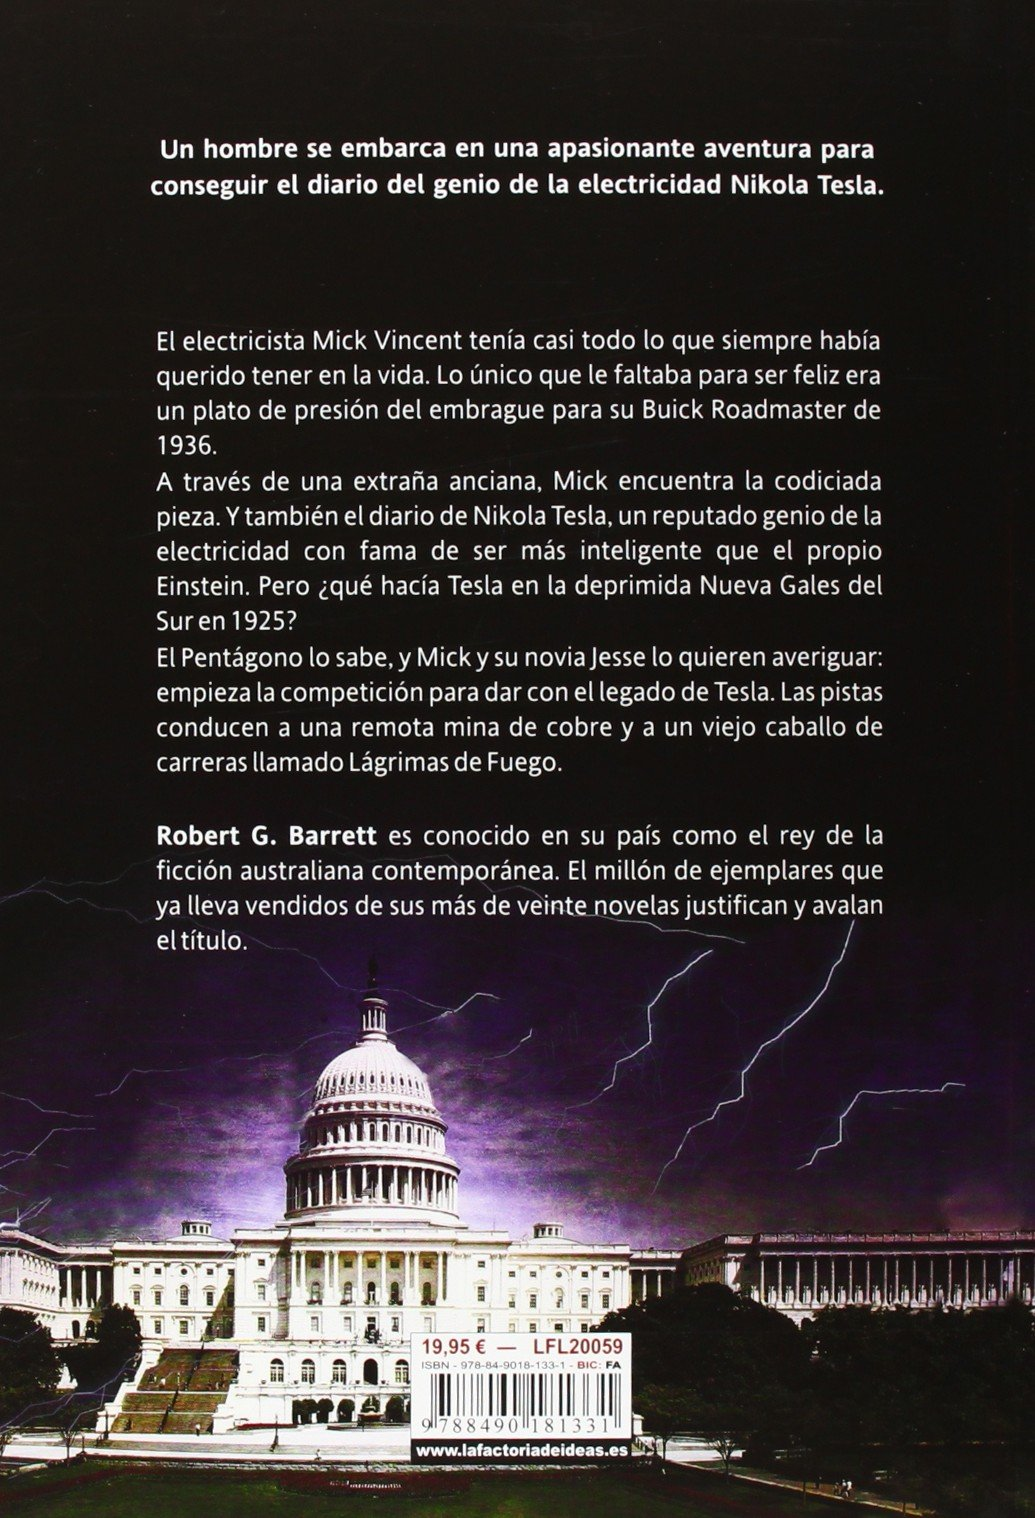 El legado de Tesla / The Tesla Legacy (Spanish Edition): Robert G. Barrett: 9788490181331: Amazon.com: Books